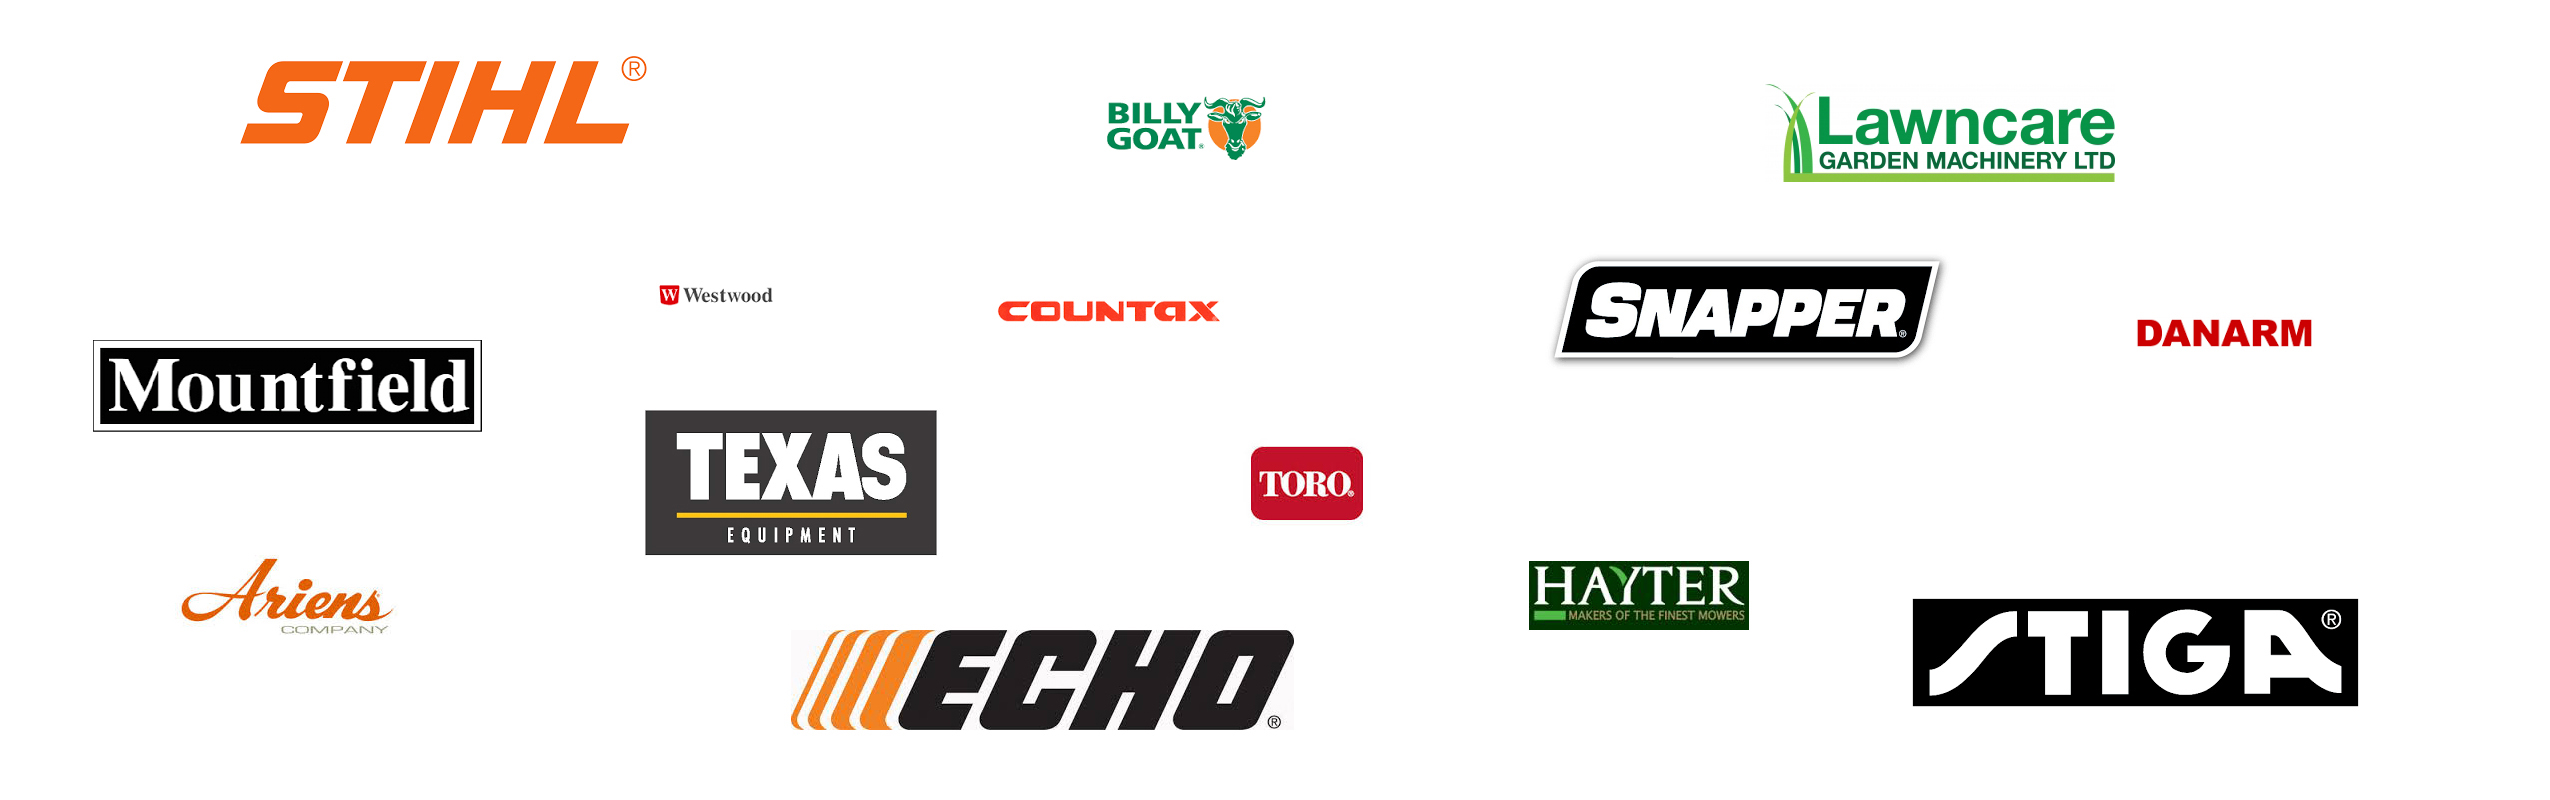 Lawncare Garden Machinery Brands